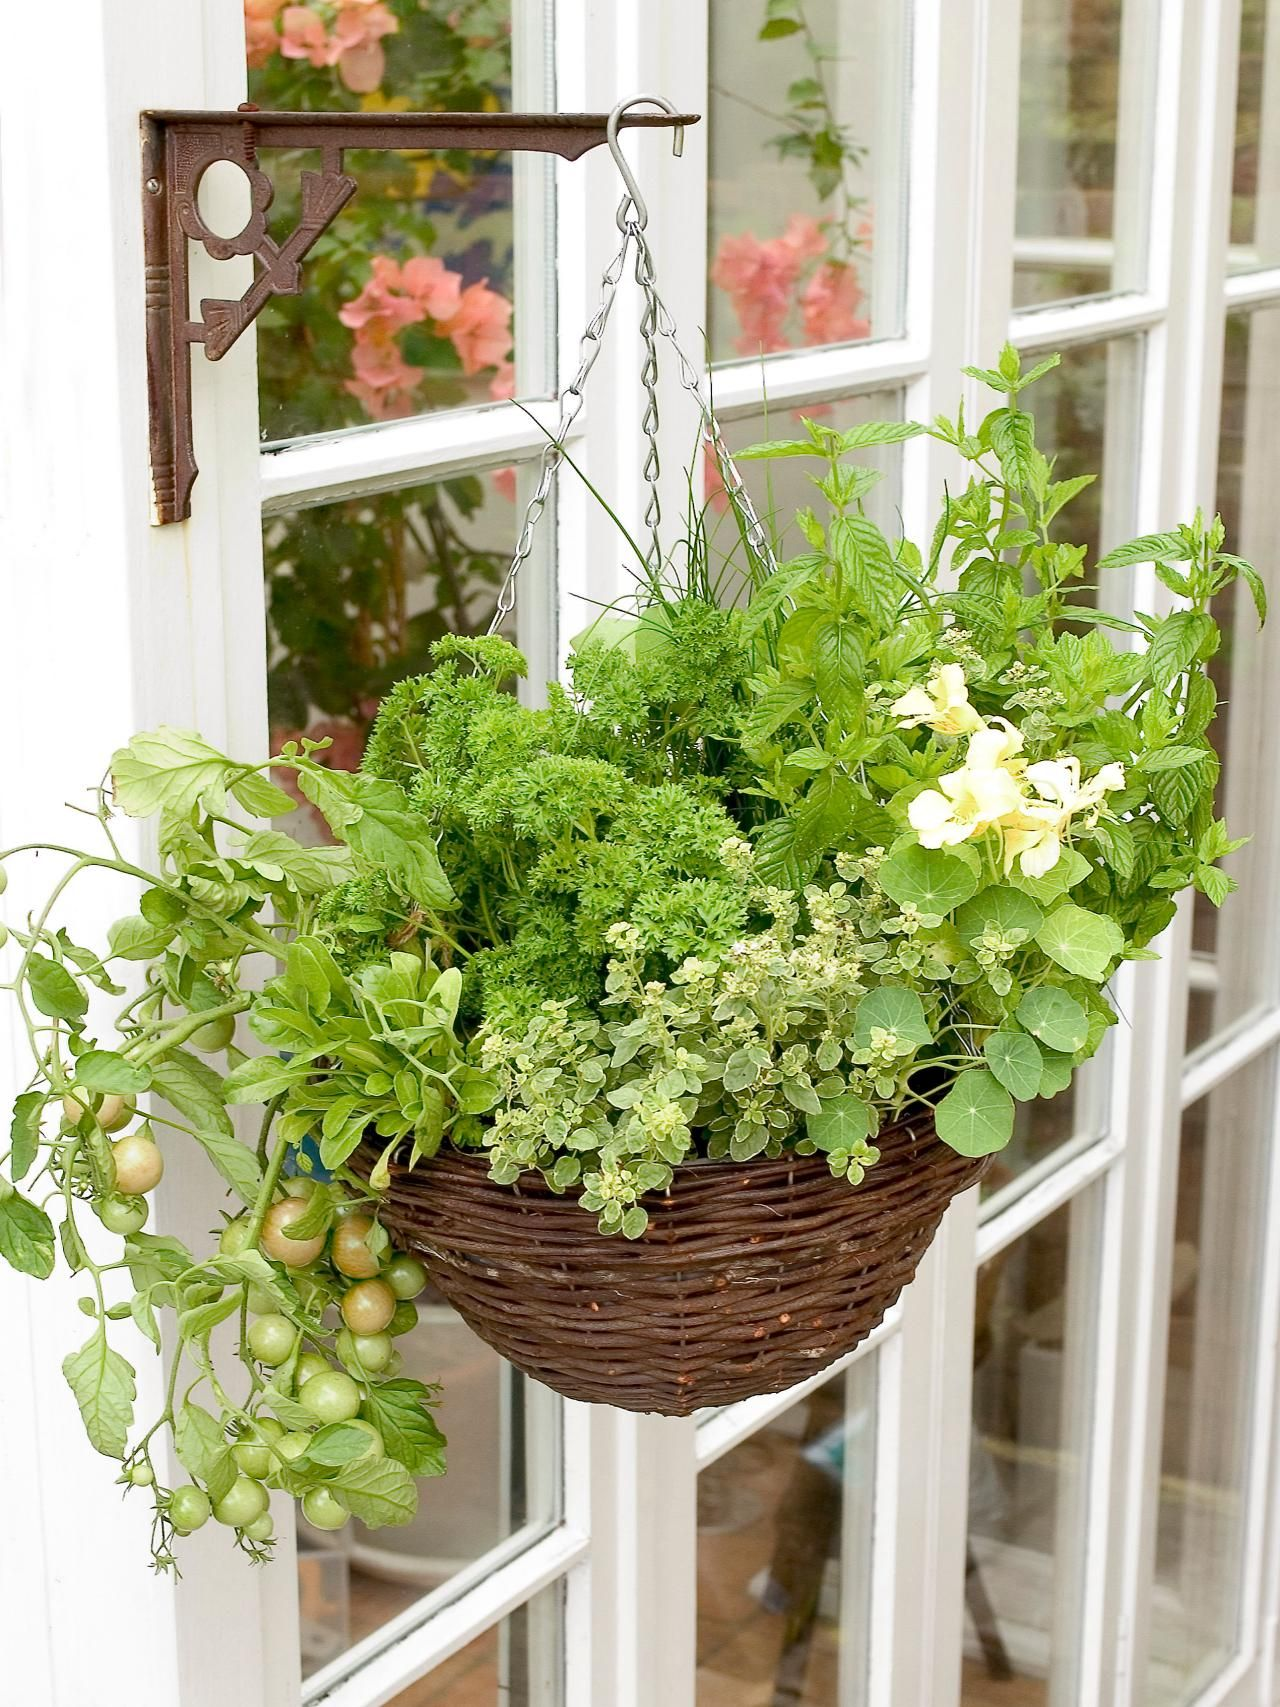 Small Garden Ideas & Designs for Small Spaces | Vegetable ...